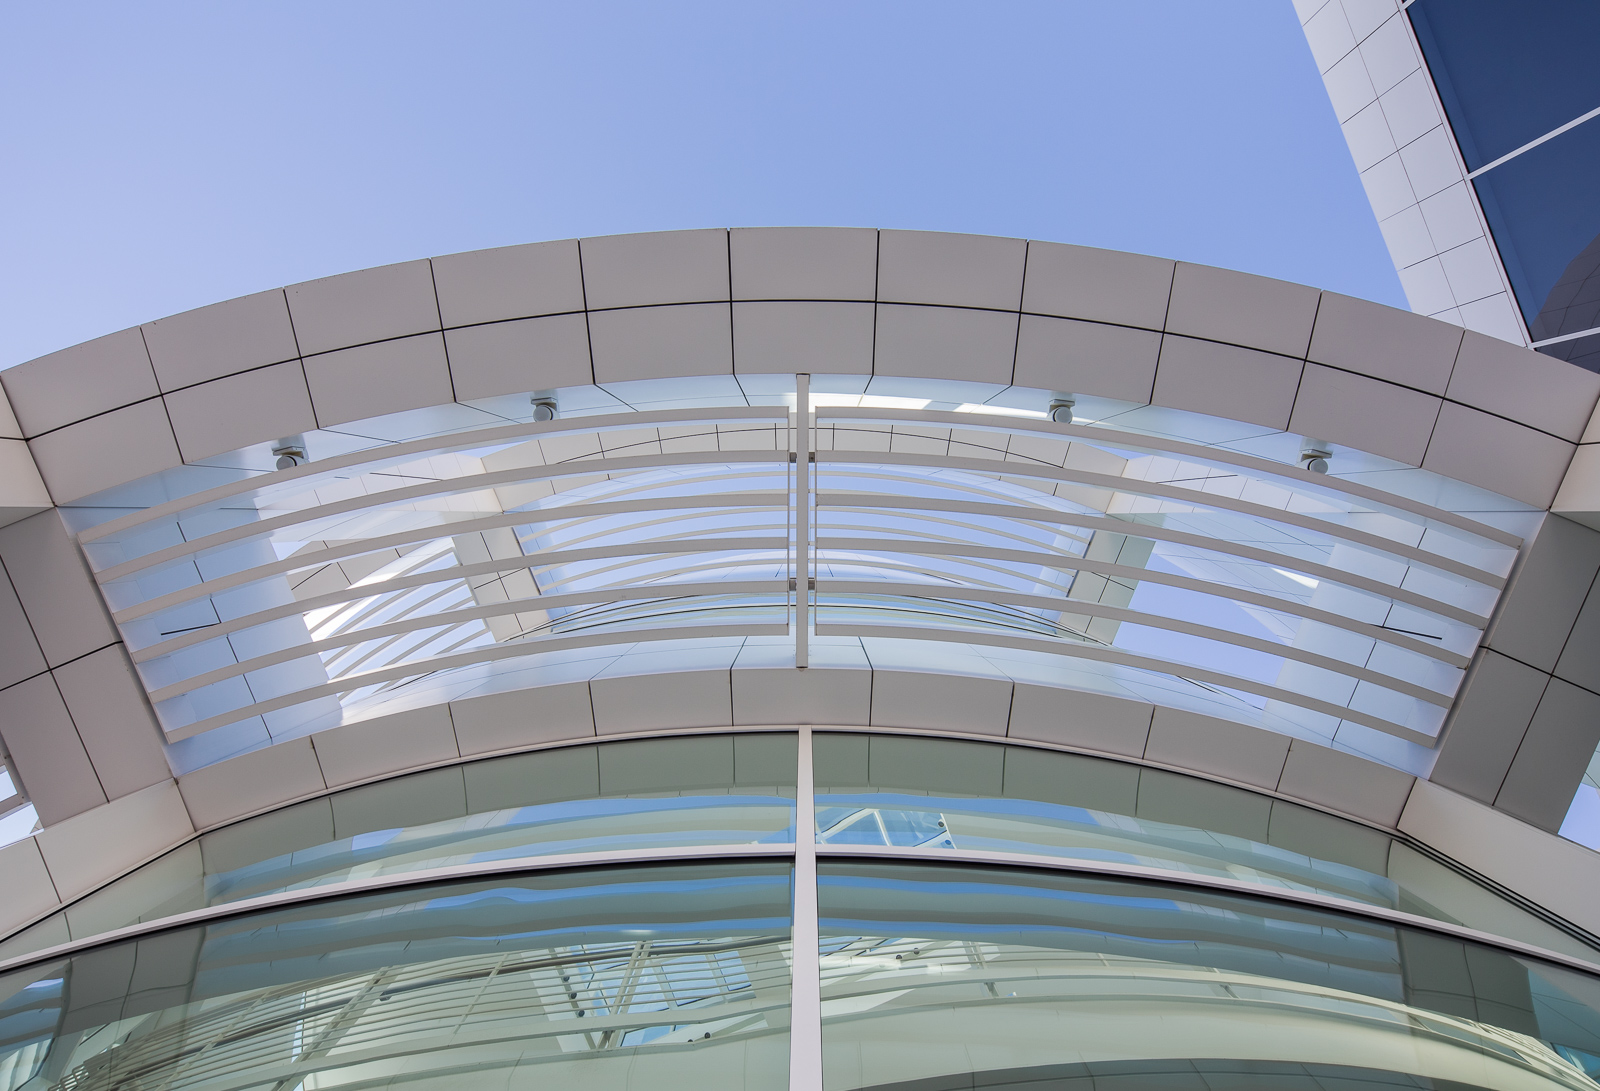 Looking up at the facade of the Getty Center designed by Richard Meier